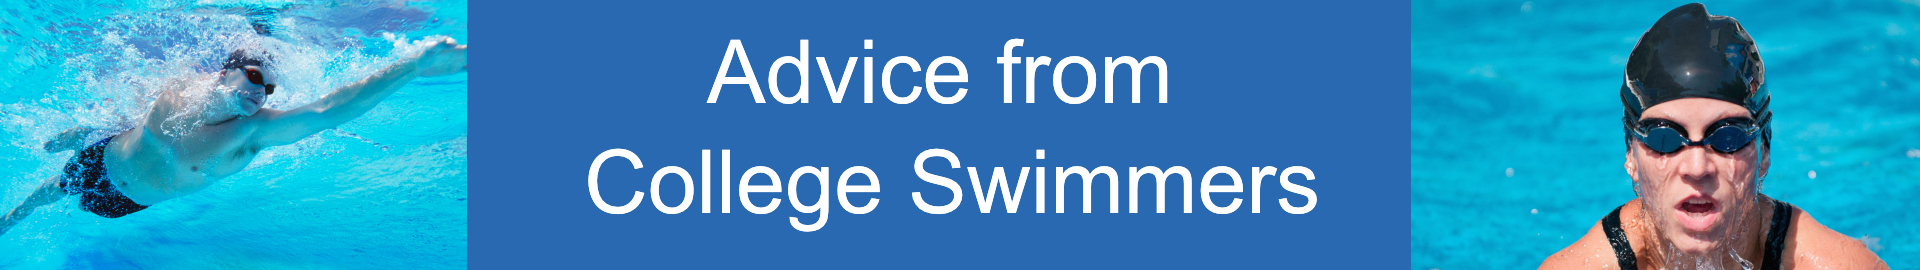 advice-from-college-swimmers